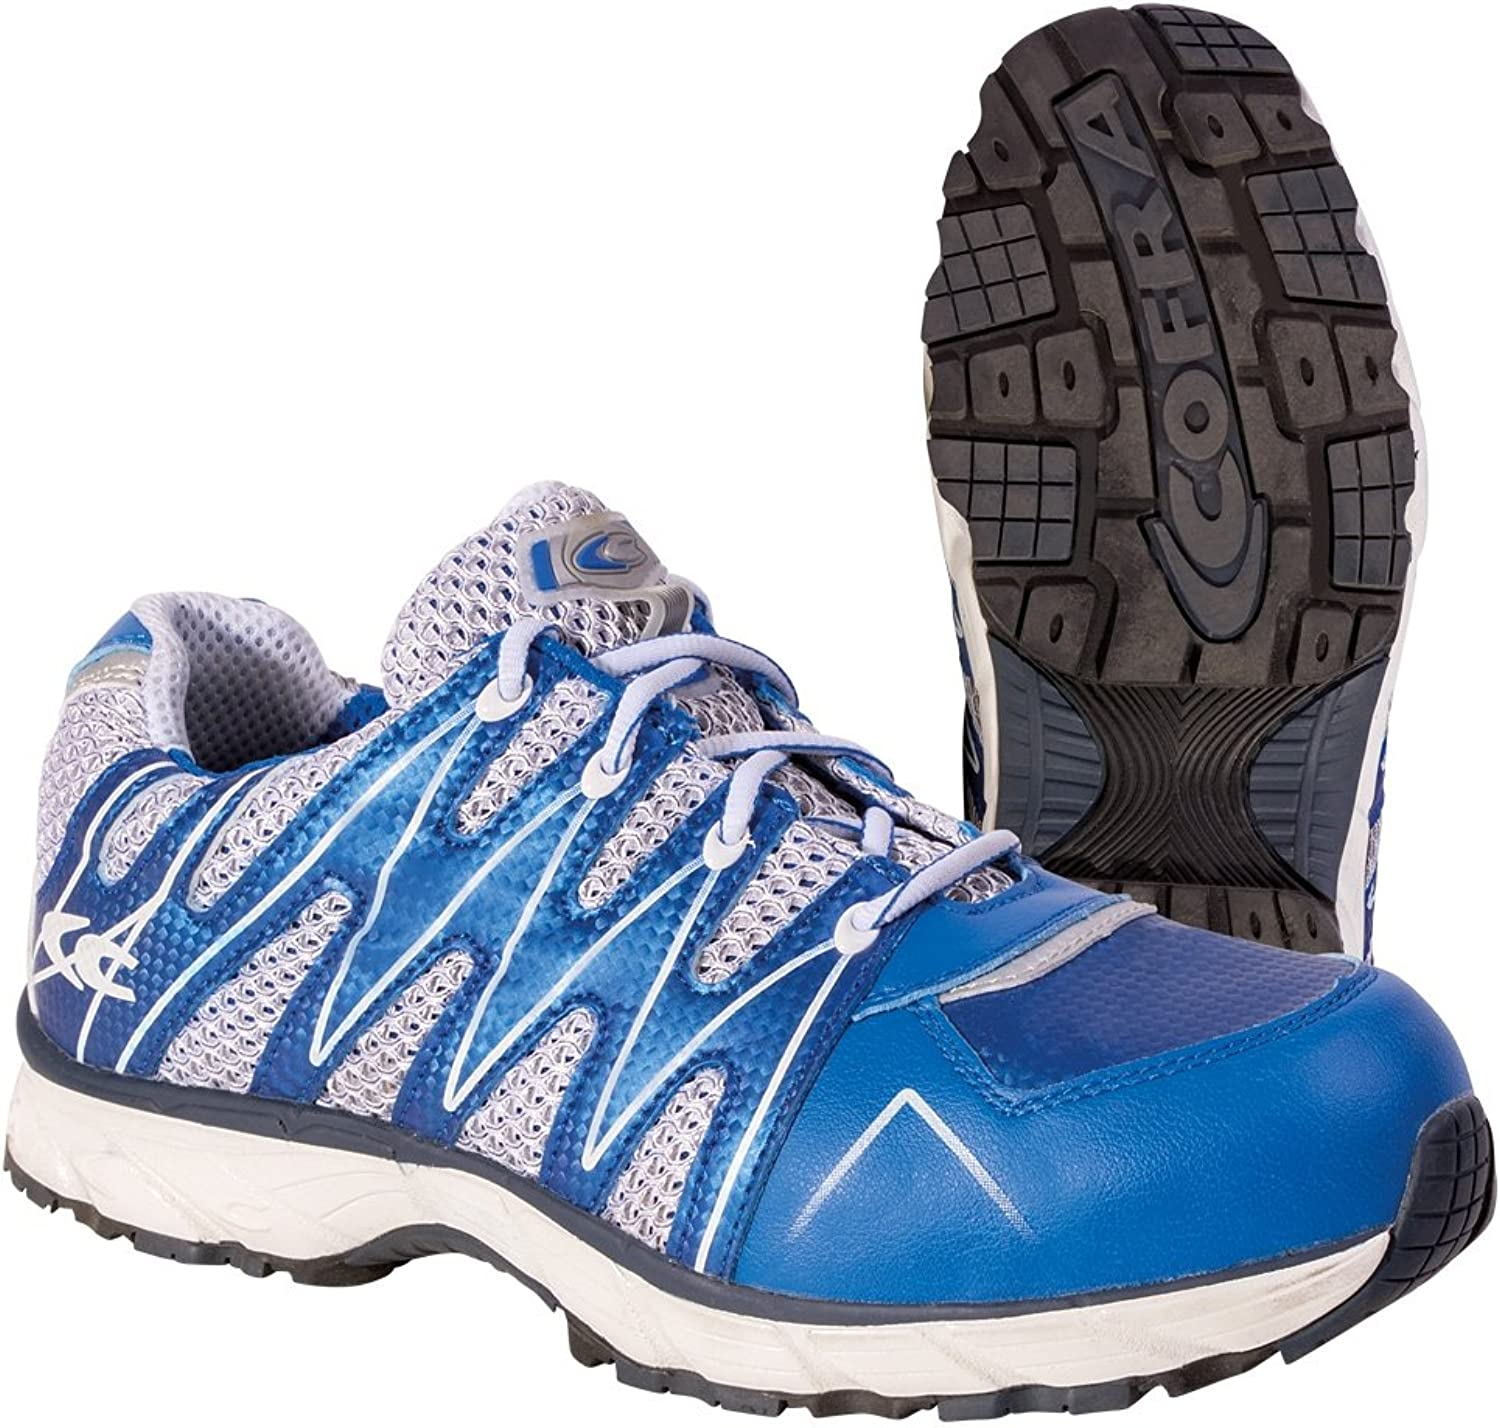 Cofra JV031-000.W43 Size 43 S1 P SRC  New Samurai  Safety shoes - bluee - EN safety certified